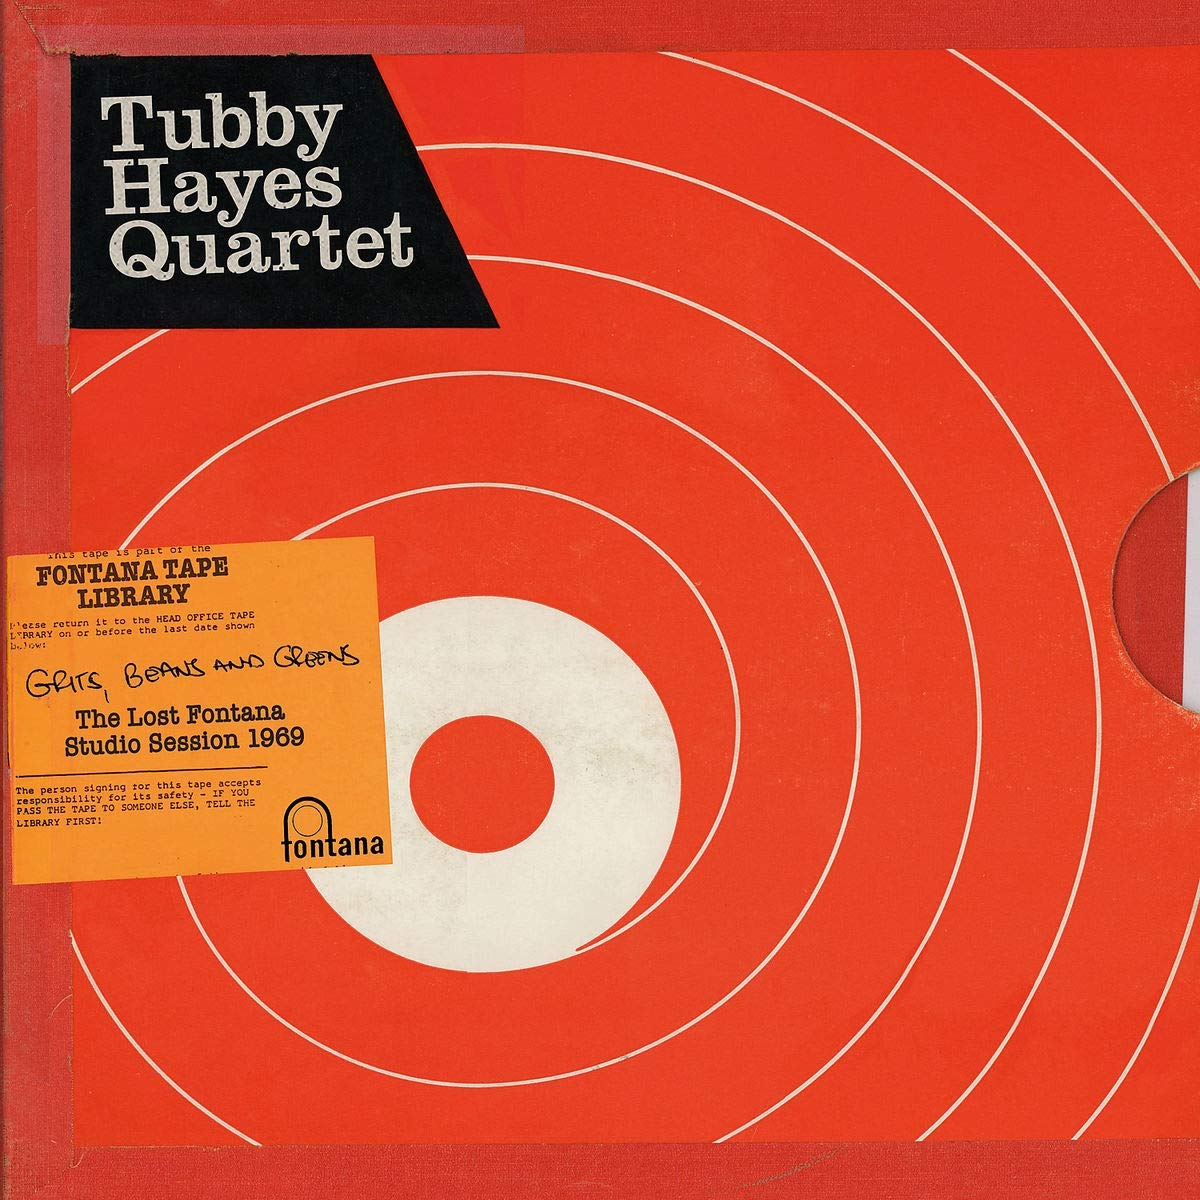 цены Табби Хауес Tubby Hayes. Grits, Beans And Greens: The Lost Fontana Studio Session 1969